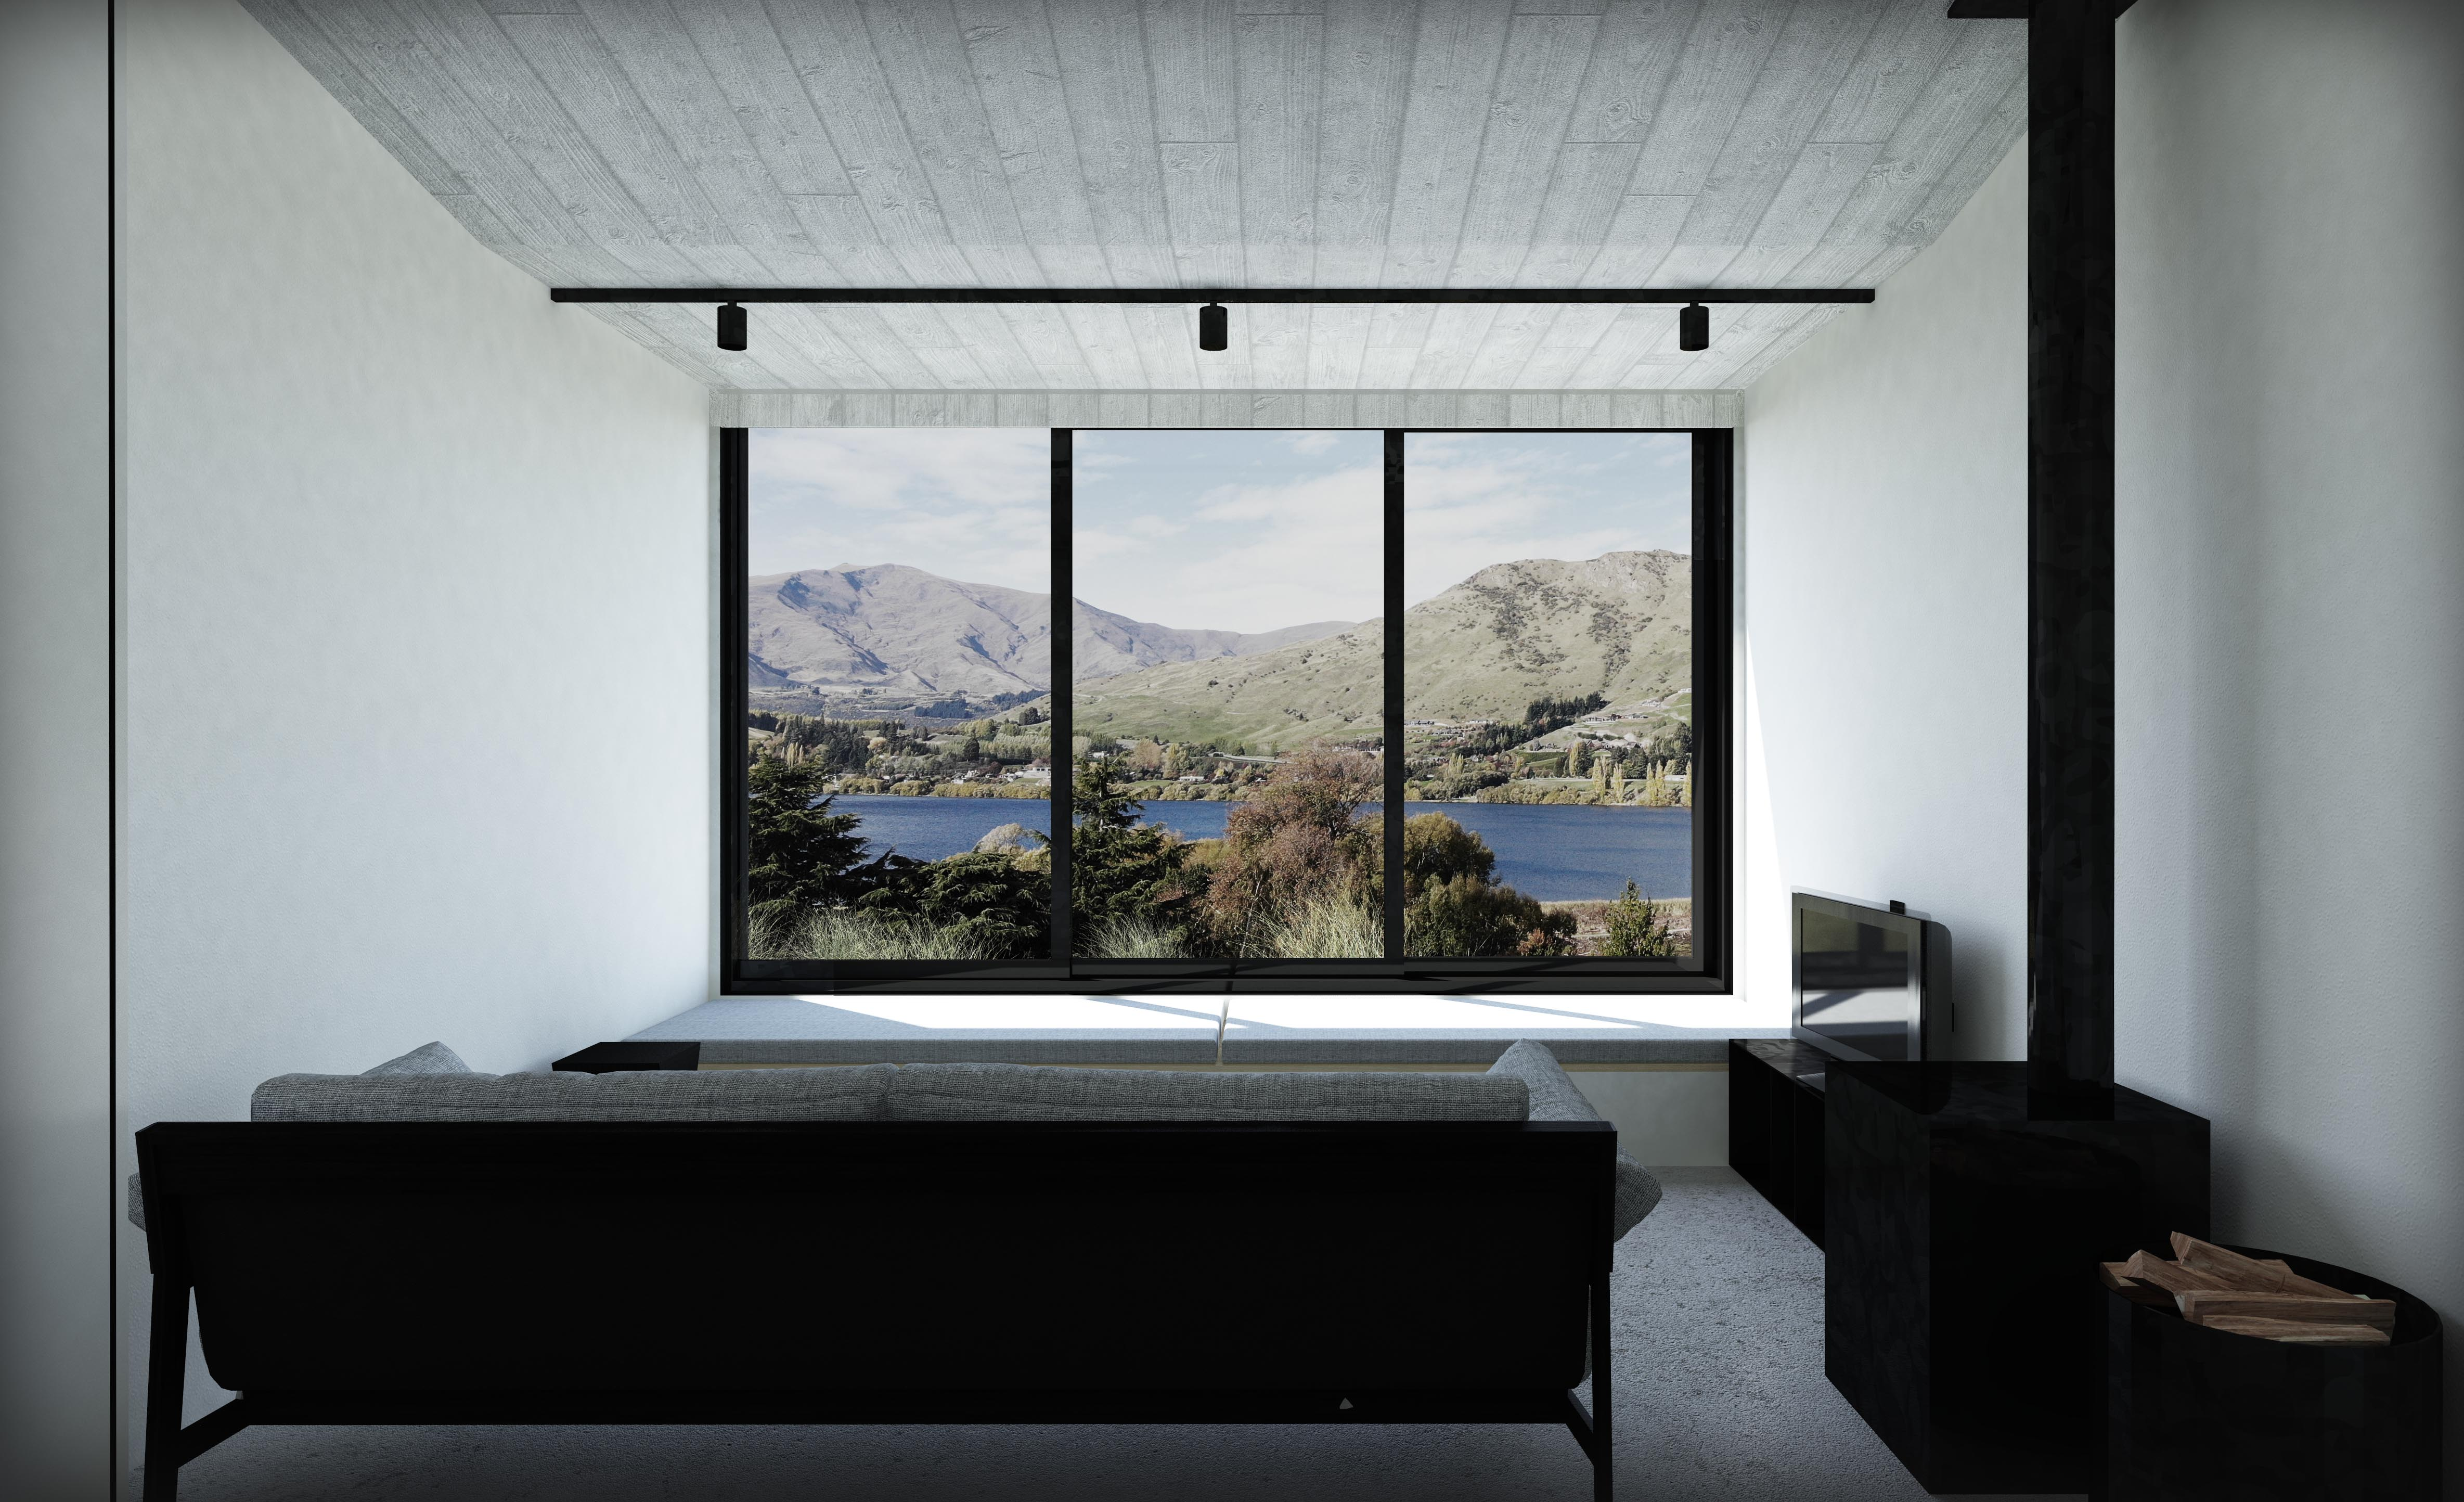 Lake Hayes Farm Cottages by Assembly Architects, Arrowtown, Queenstown